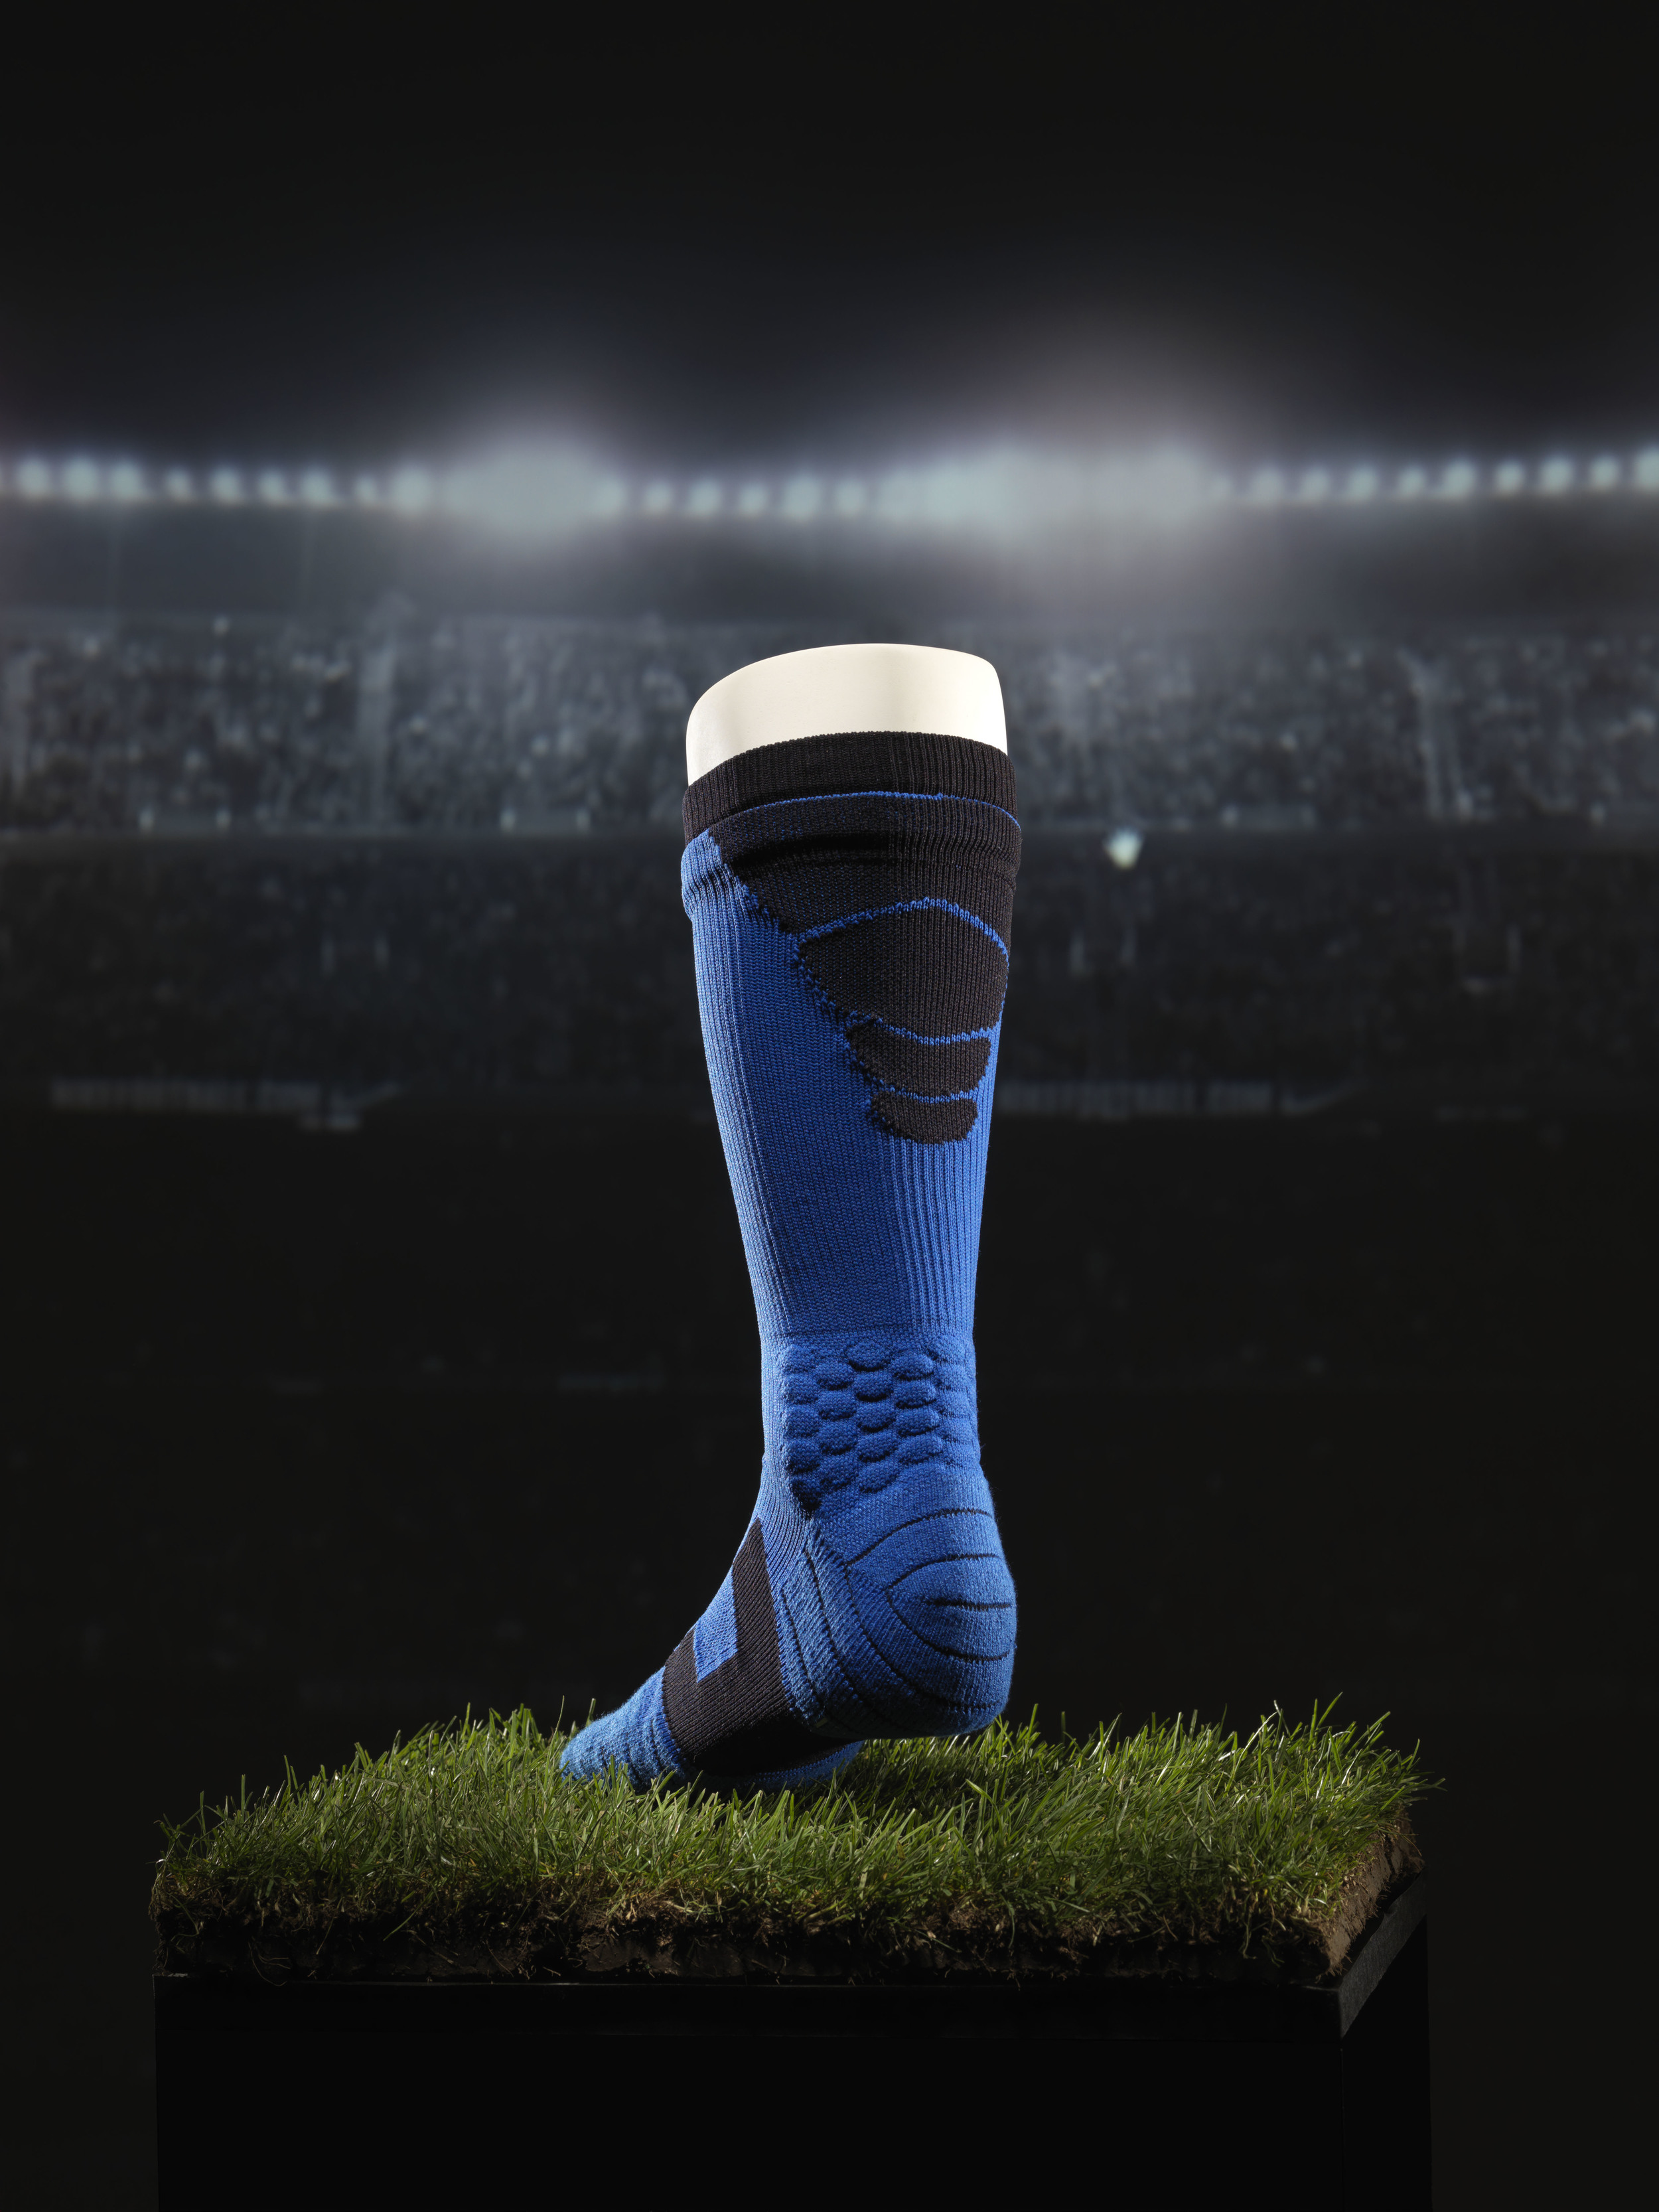 vapor_football_sock.jpg